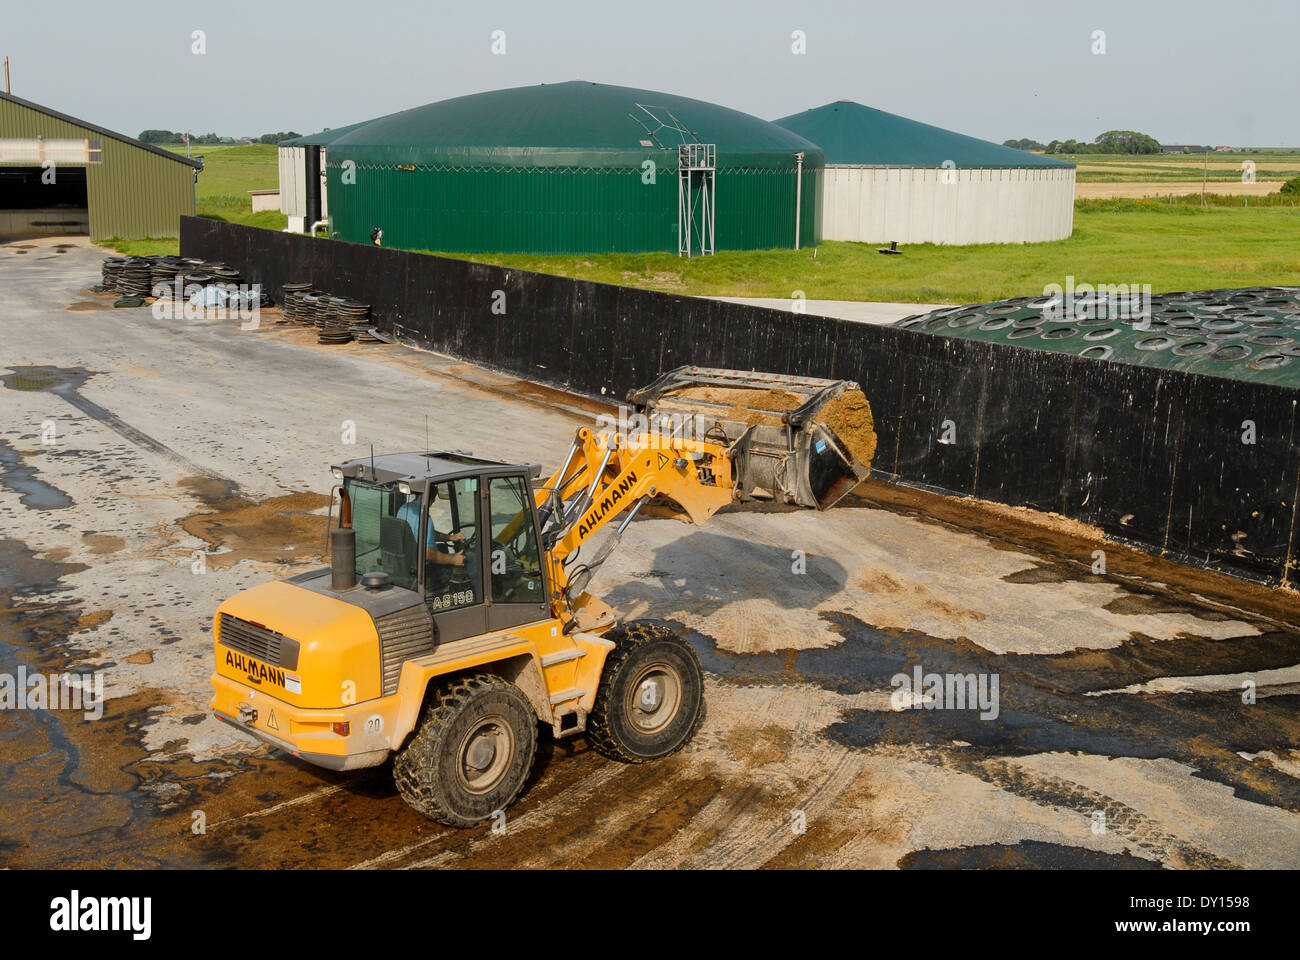 GERMANY Biogas plant at Pellworm Northsea island, maize substrate storage - Stock Image